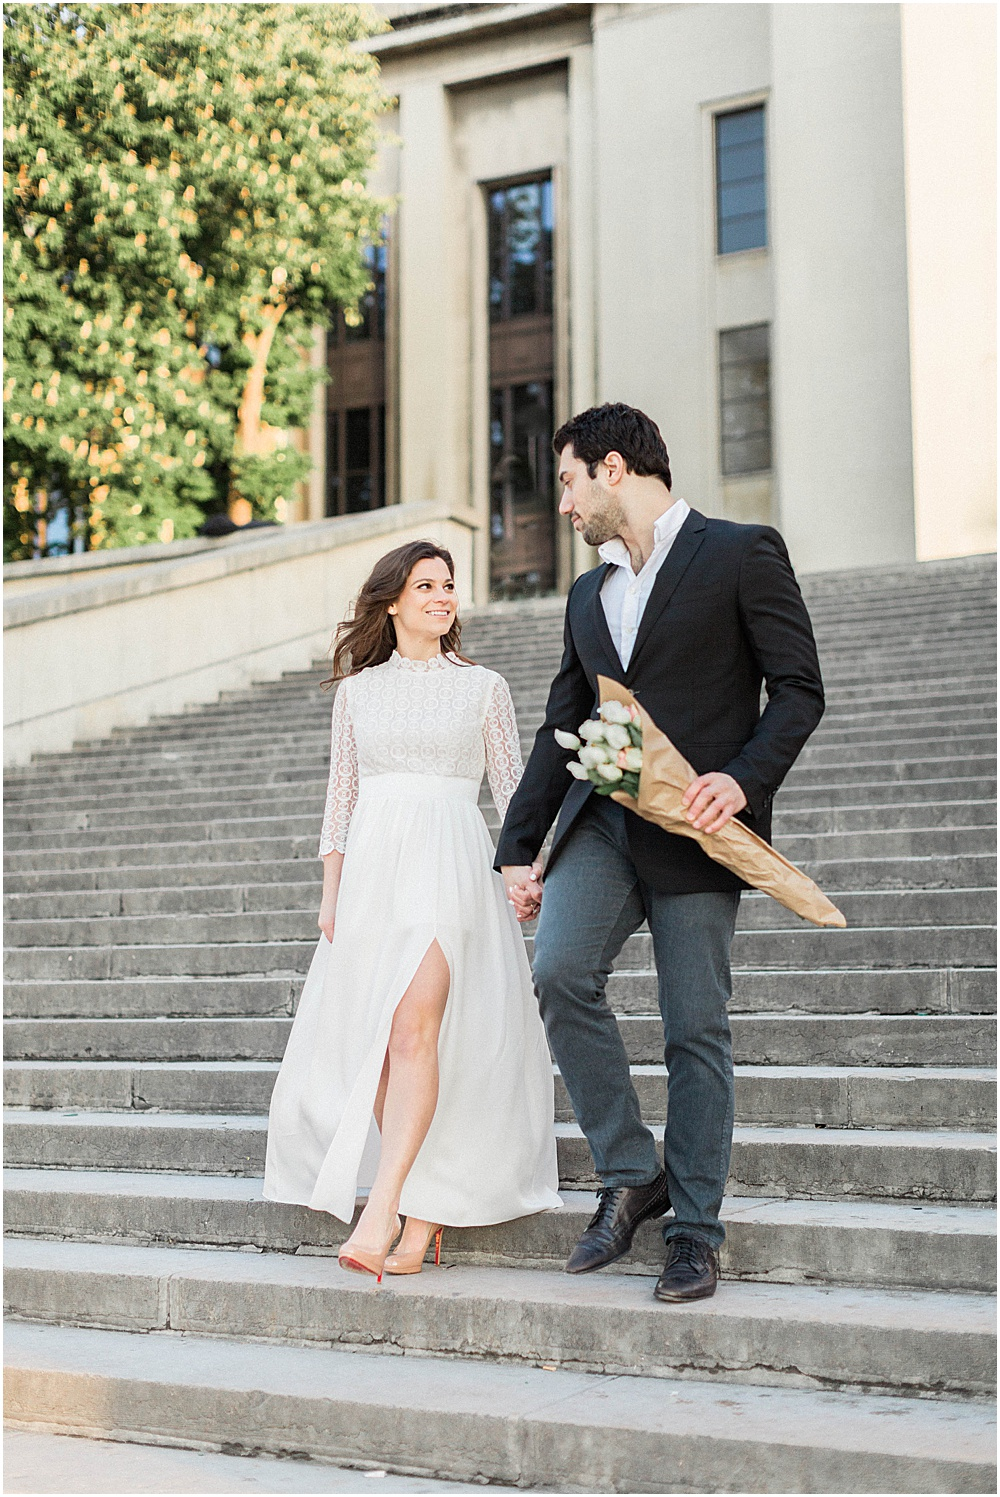 Trocadero_stairs_paris_white_gown_destination_pre_wedding_spring_engagement_session_boston_wedding_photographer_meredith_jane_photography_photo_0222.jpg